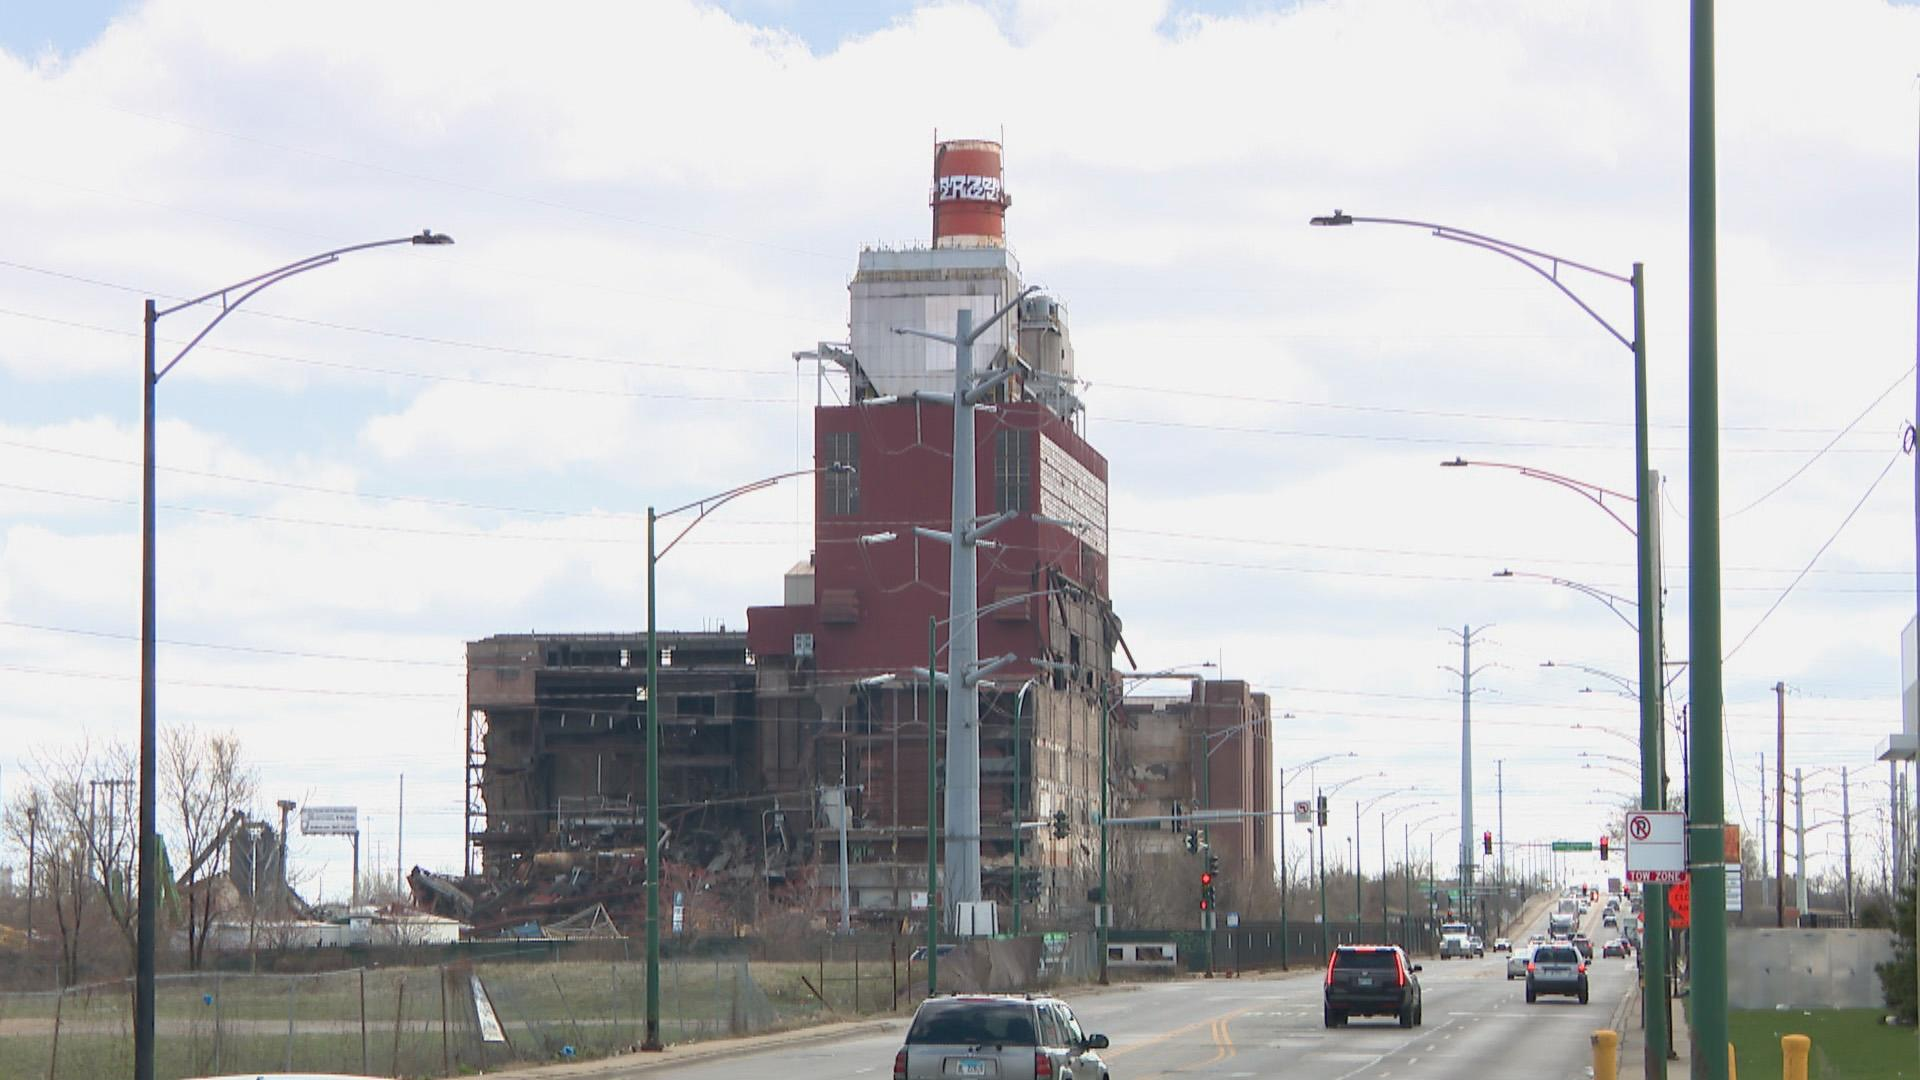 The partially demolished site of the former Crawford Power Generating Station in April 2020. (WTTW News)